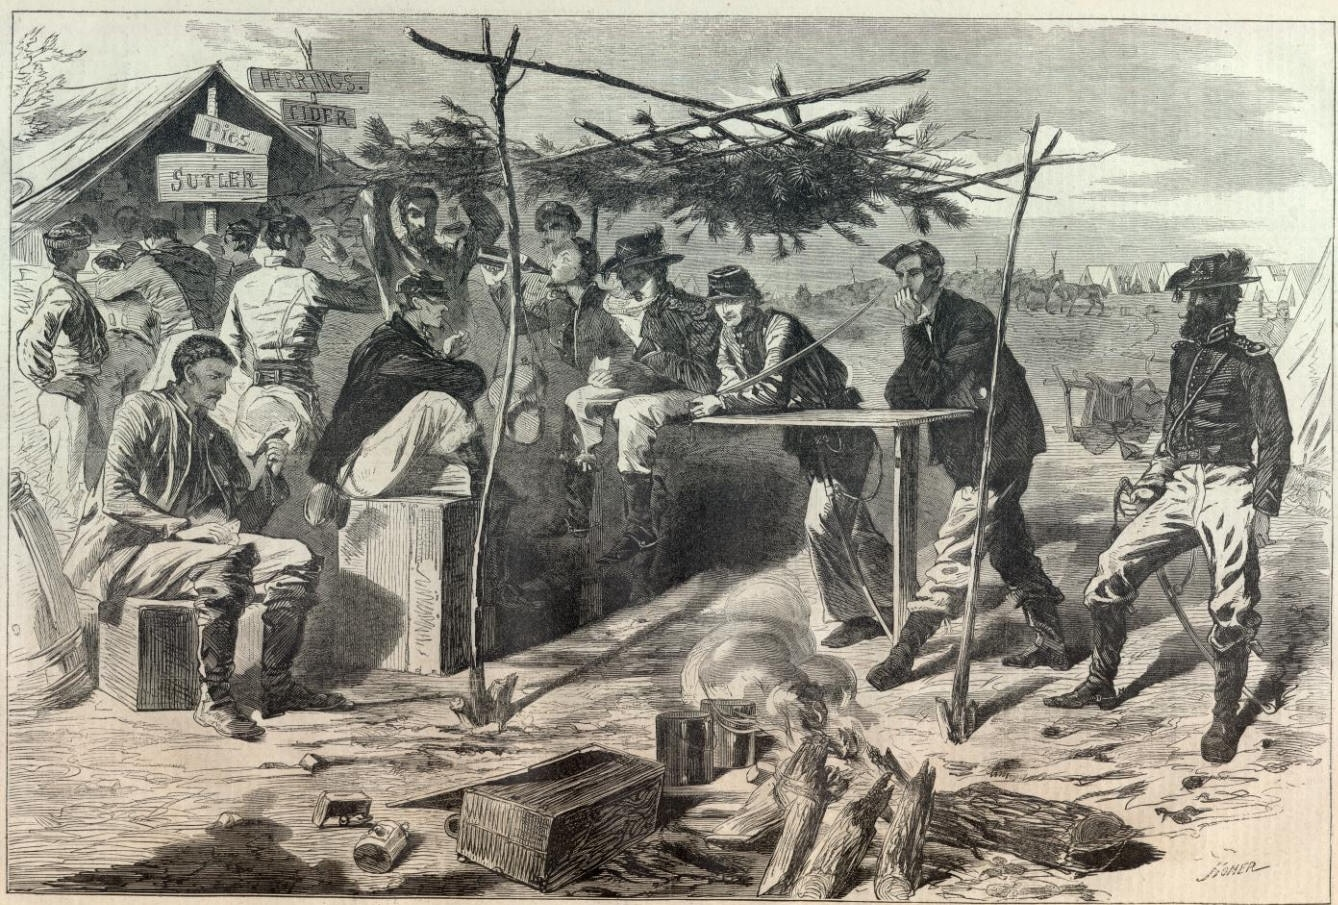 Drawing by combat artist Winslow Homer, showing happy Union soldiers of the 16th Maine Infantry celebrating the Thanksgiving of 1862 during the Civil War. (Photo: Library of Congress)